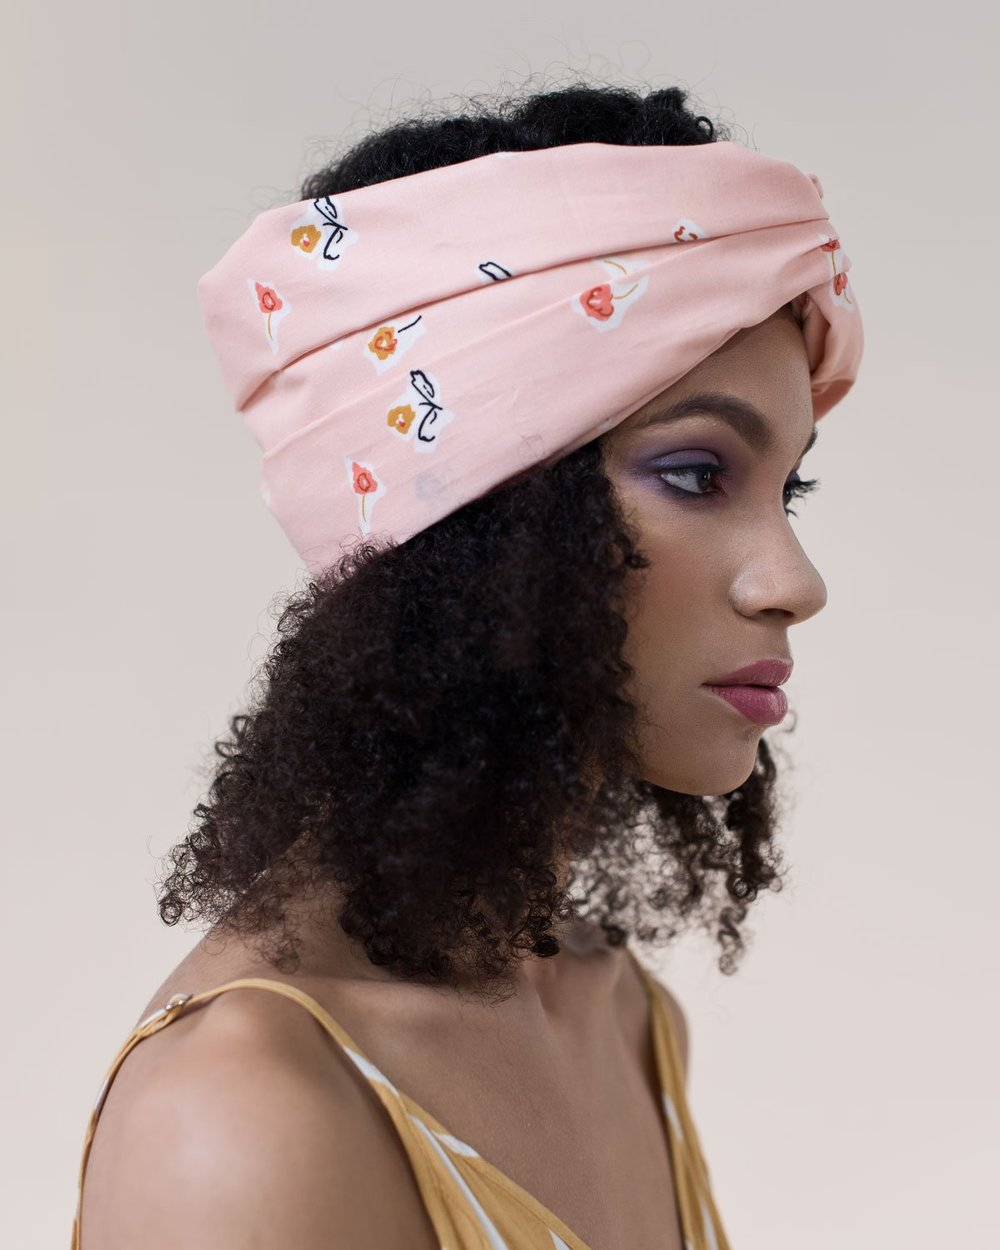 briana-the-wrap-life-head-wrap-turban-hair-scarf-brooklyn-african-print6_1200x.jpg